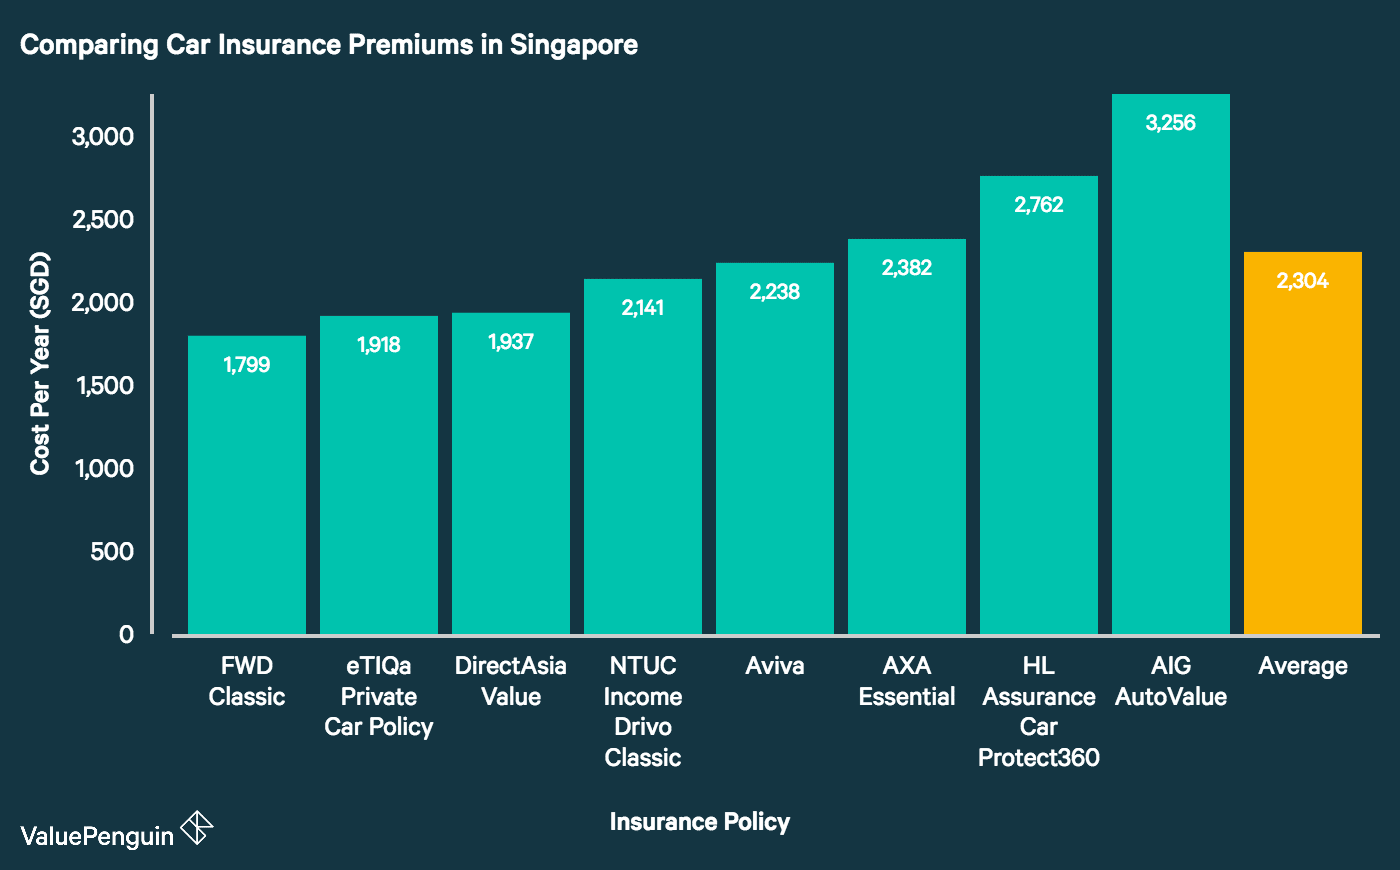 This graph compares car insurance rates offered by eight of Singapore's major insurance providers. It demonstrates that FWD, Etiqa and DirectAsia lead the pack with the cheapest premiums on the market. Meanwhile, AIG, HL Assurance (Hong Leong) and AXA have among the priciest premiums among the companies we studied.